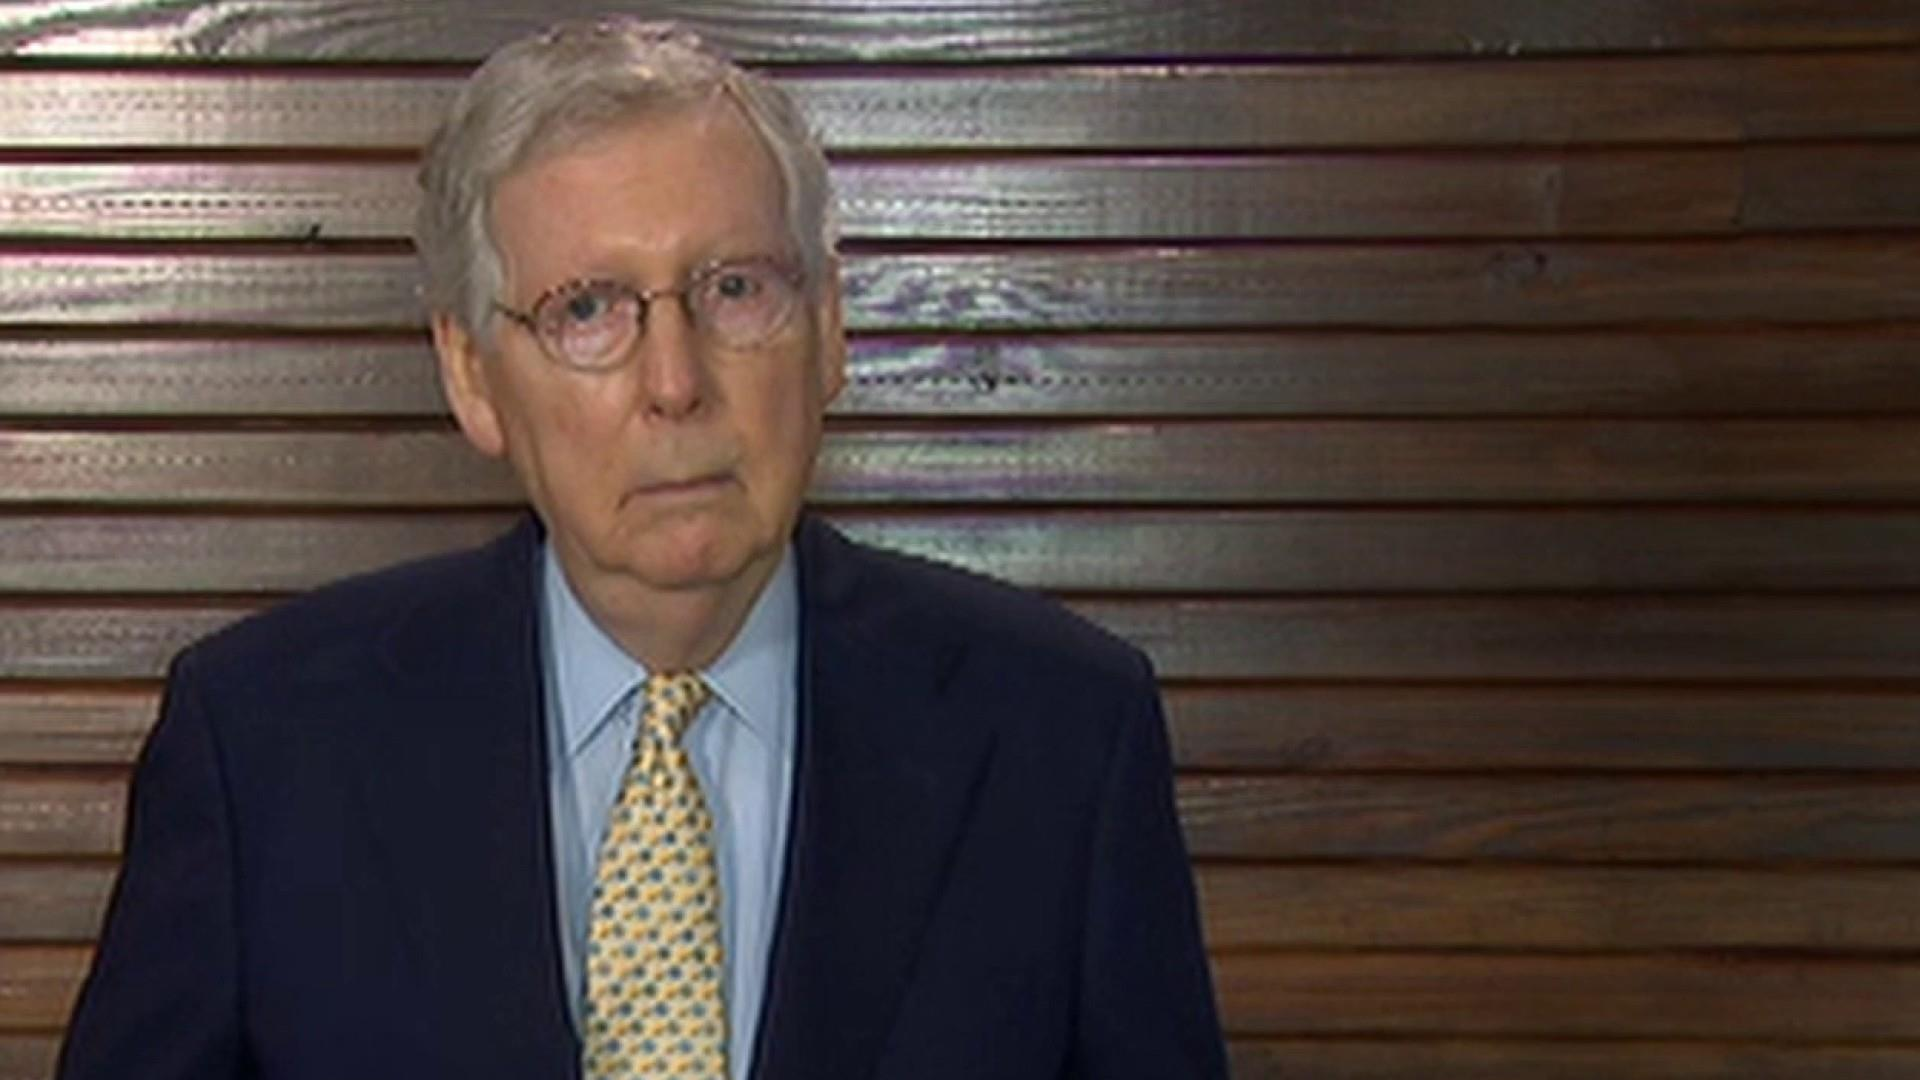 McConnell reportedly rattled by 'Moscow Mitch' attacks